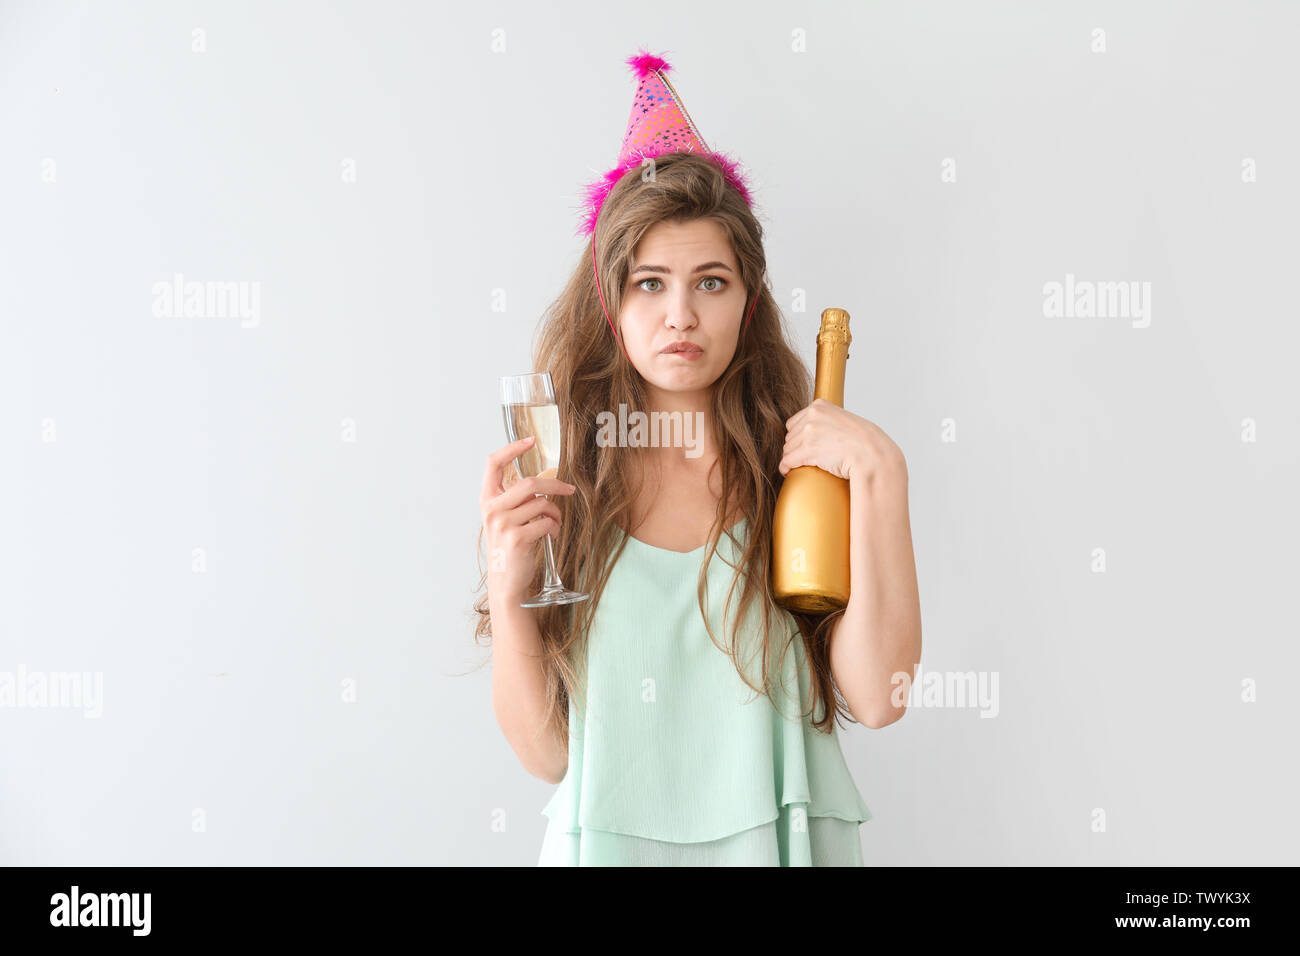 Drunk woman with party hat and champagne on light background - Stock Image